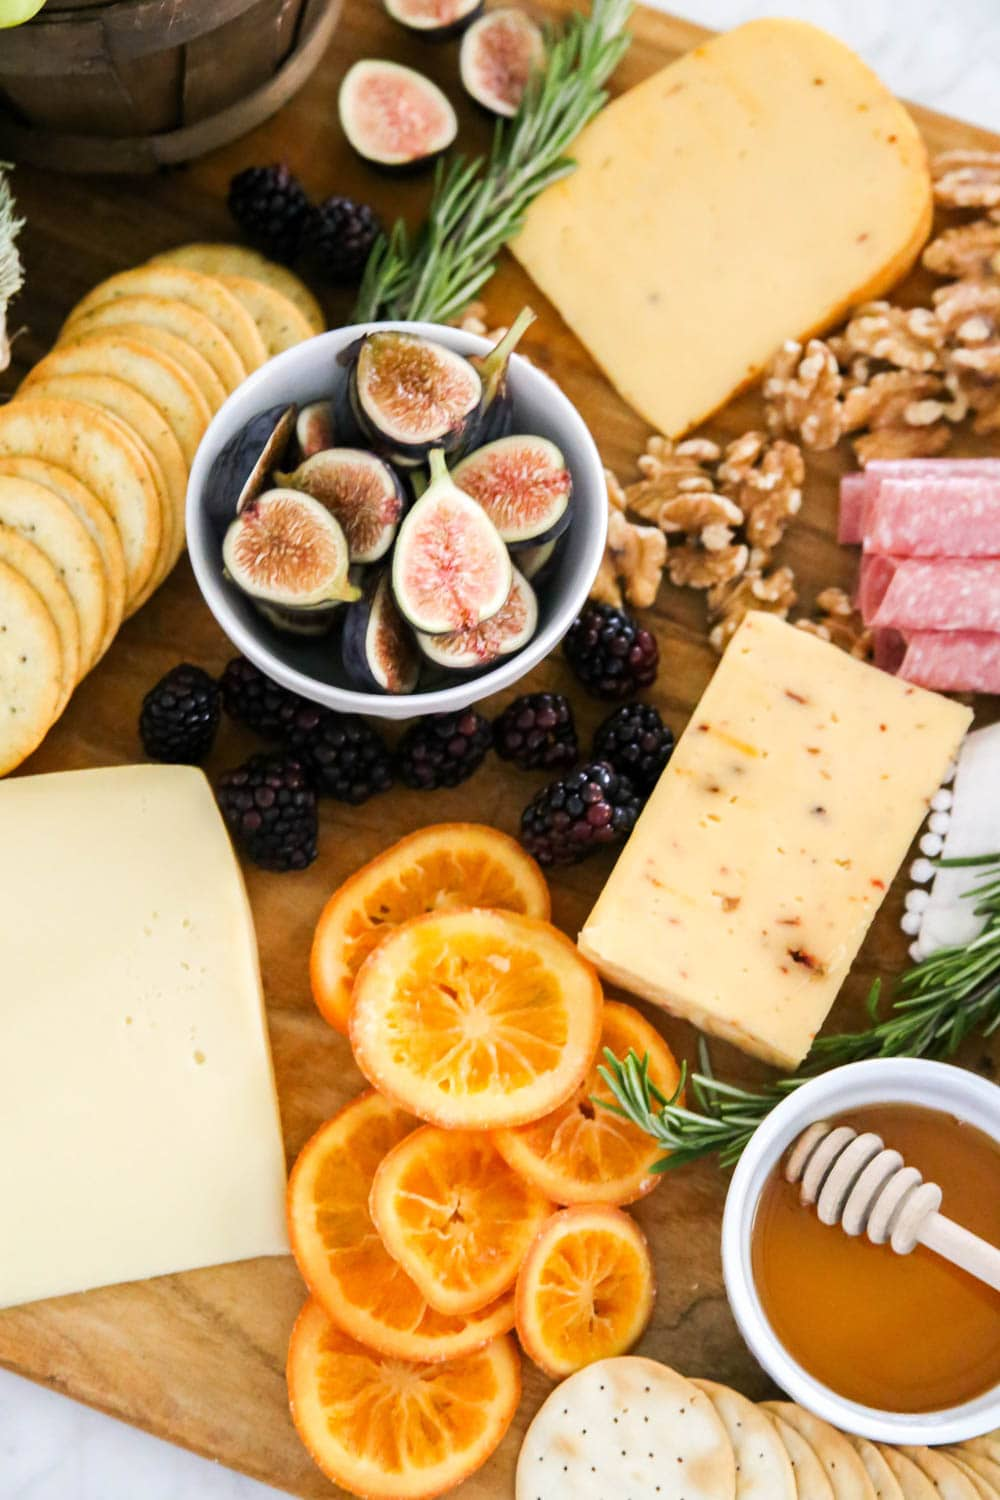 Yummy details on this fall charcuterie board with mixes of fruit, crackers, fresh rosemary and more! #ABlissfulNest #cheeseboard #fall #ad #RothCheese